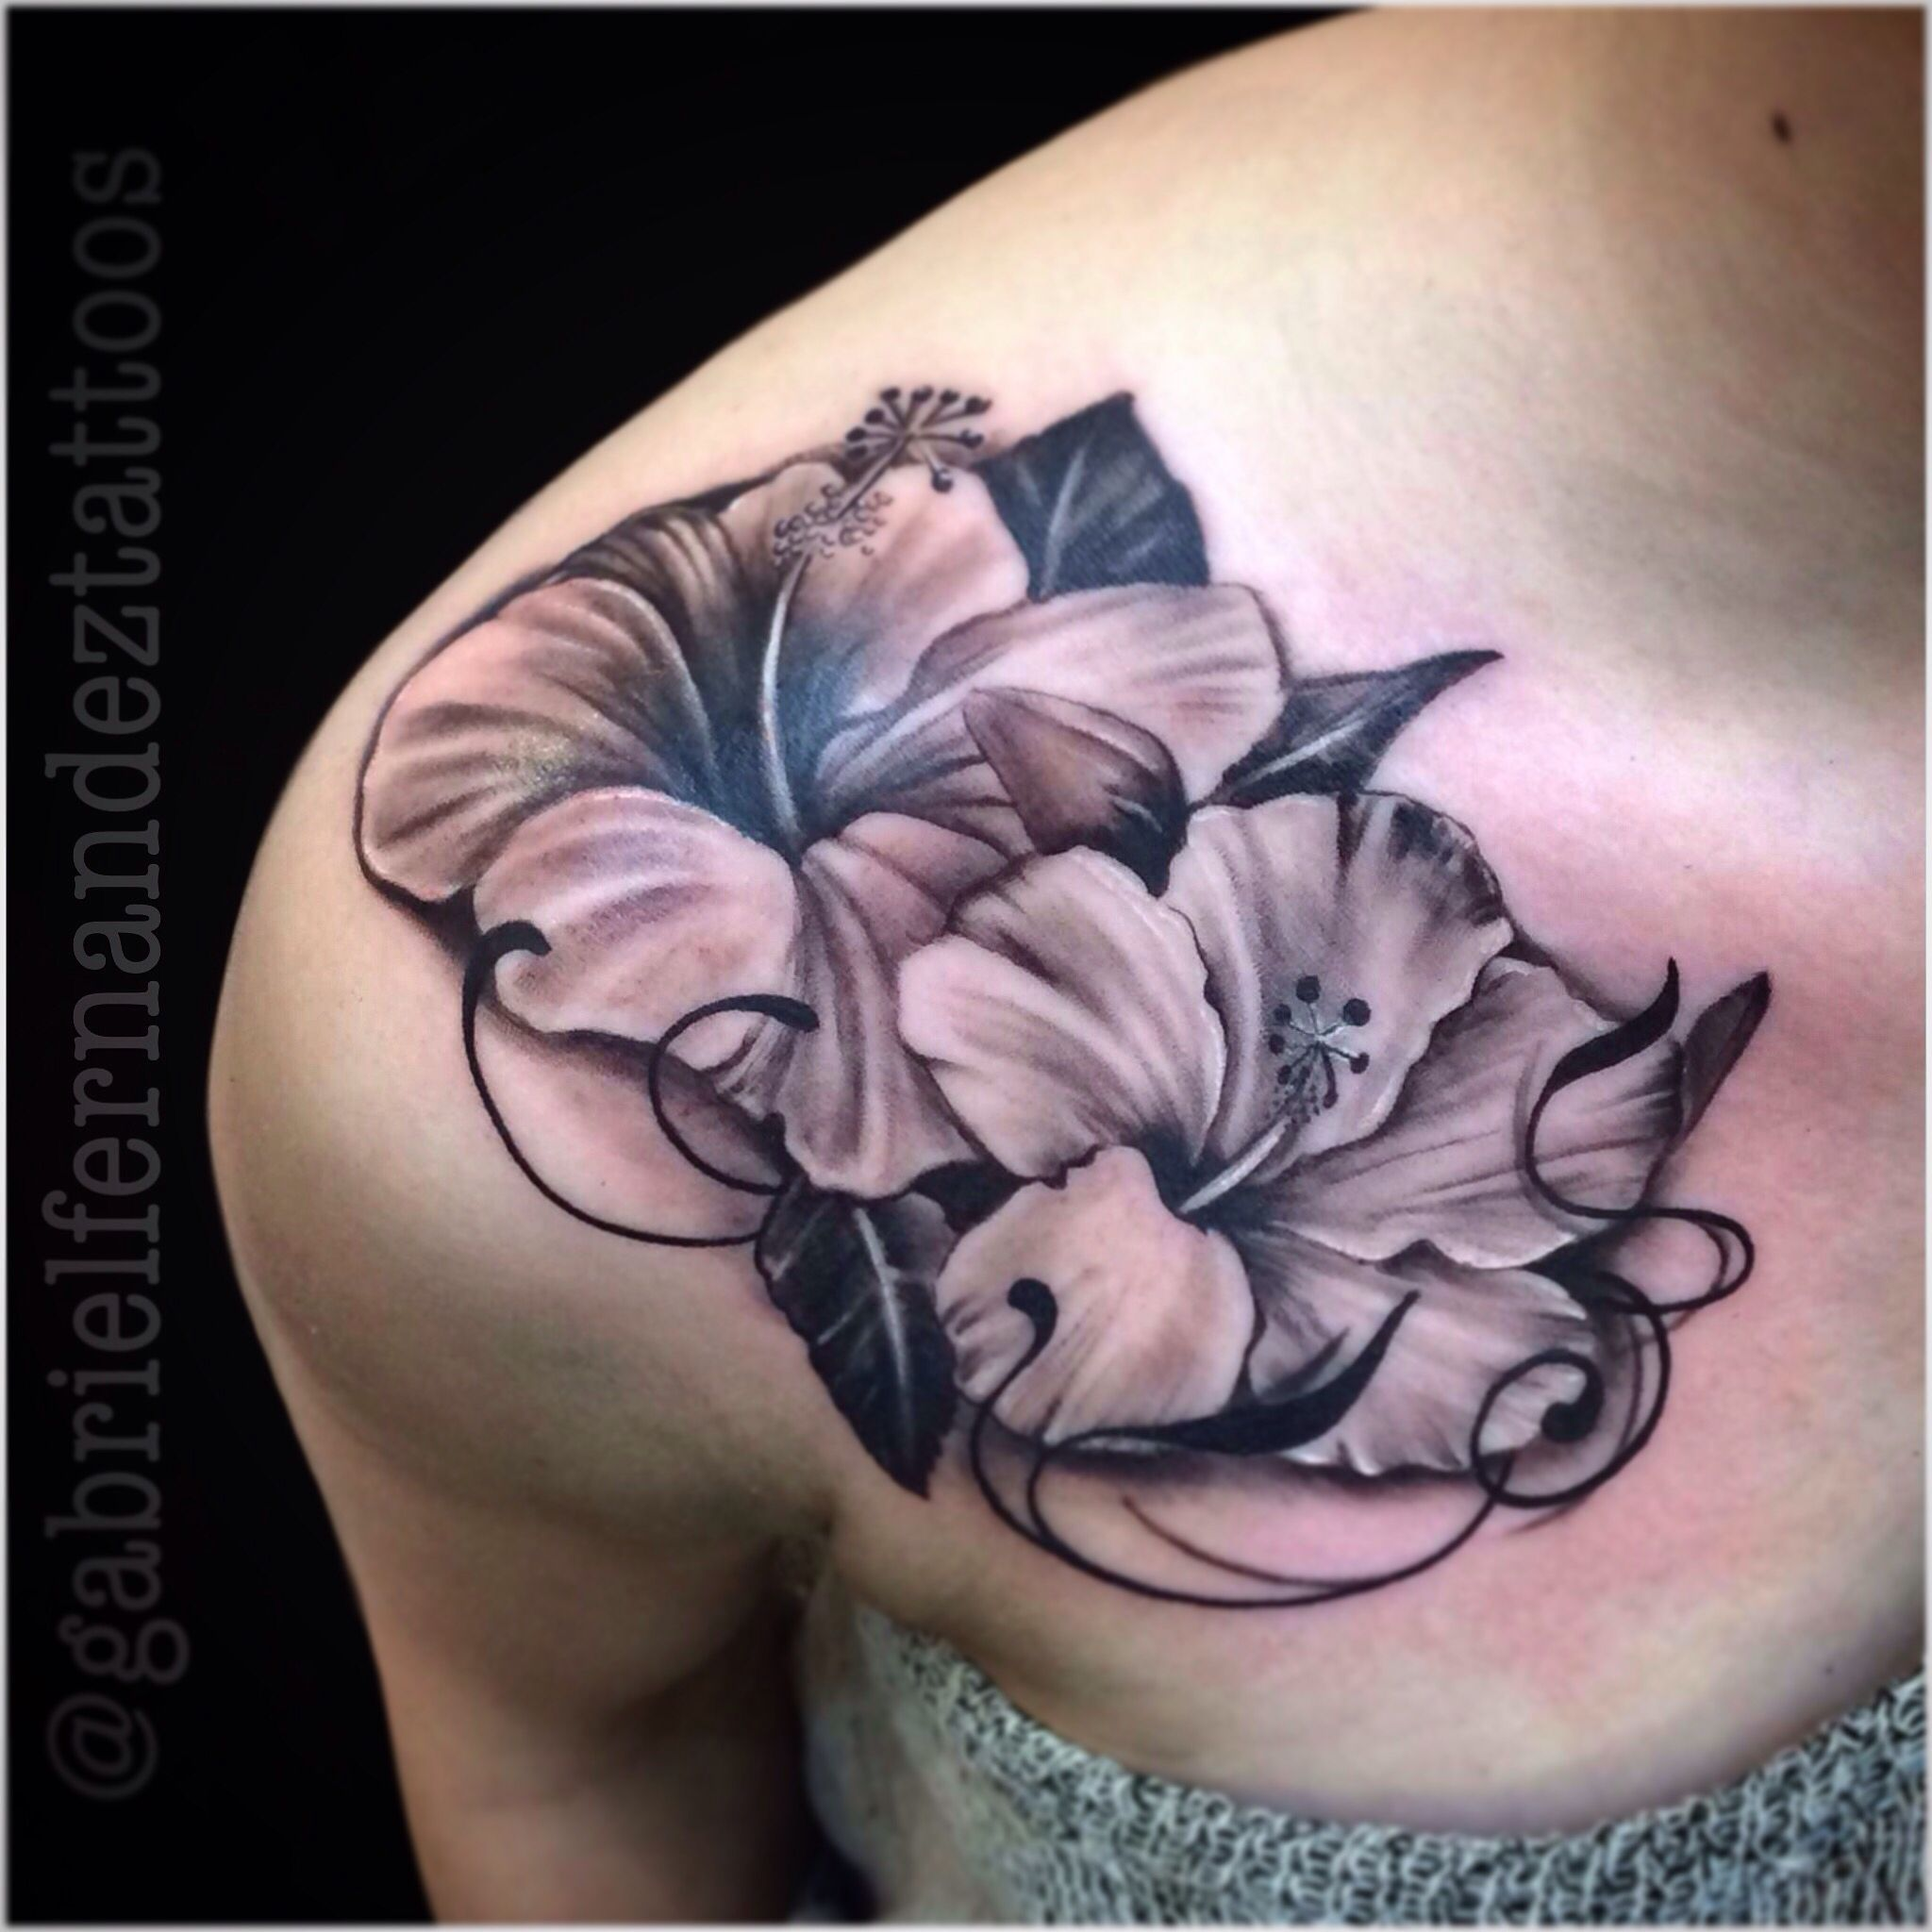 Hibiscus Tattoo: First Hibiscus Flowers I Did. They Need It To Be Semi